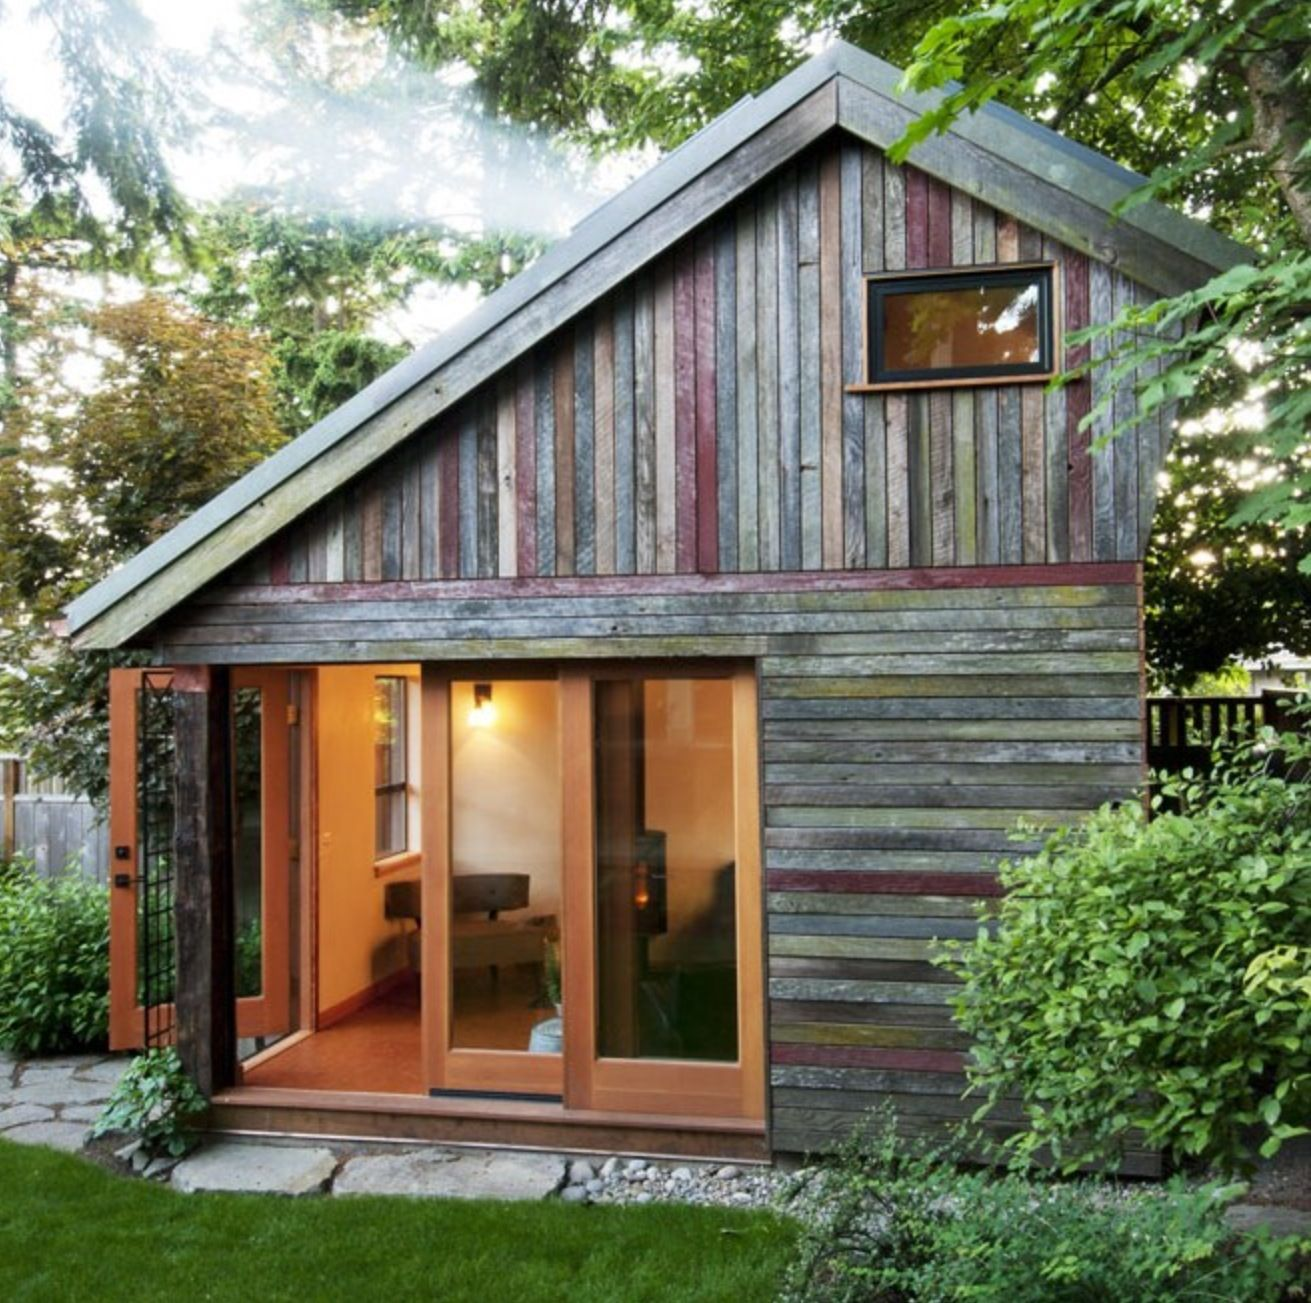 Simple Cabin No Pin Limits More Pins Like This One At Fosterginger Pinterest Backyard House Tiny Backyard House Tiny House Blog Backyard diy tiny house